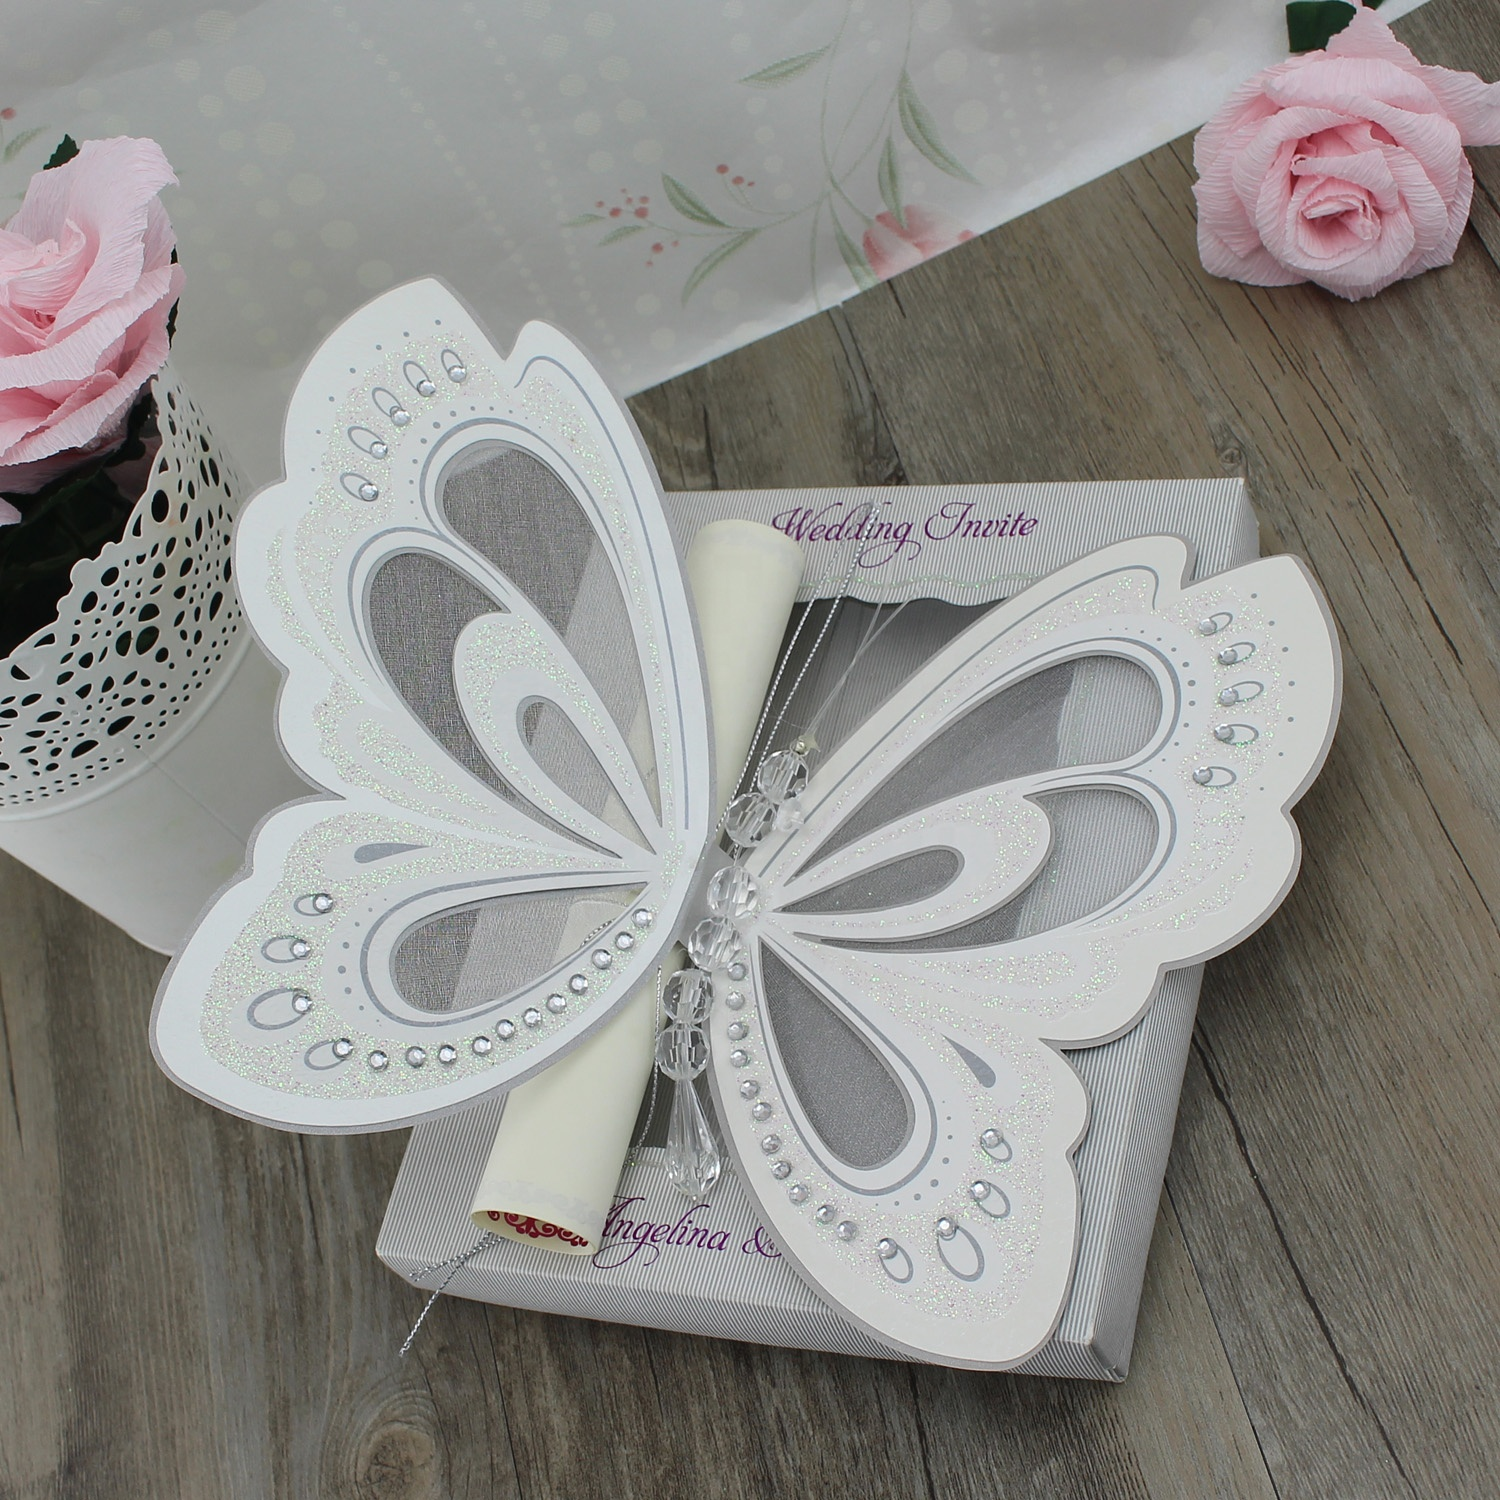 2020 Royal Butterfly Shape Wedding Invitation Card With Box - Buy Wedding  Invitation Card,Butterfly Shape Wedding Invitation Card,Wedding Invitation  Card With Box Product on Alibaba.com